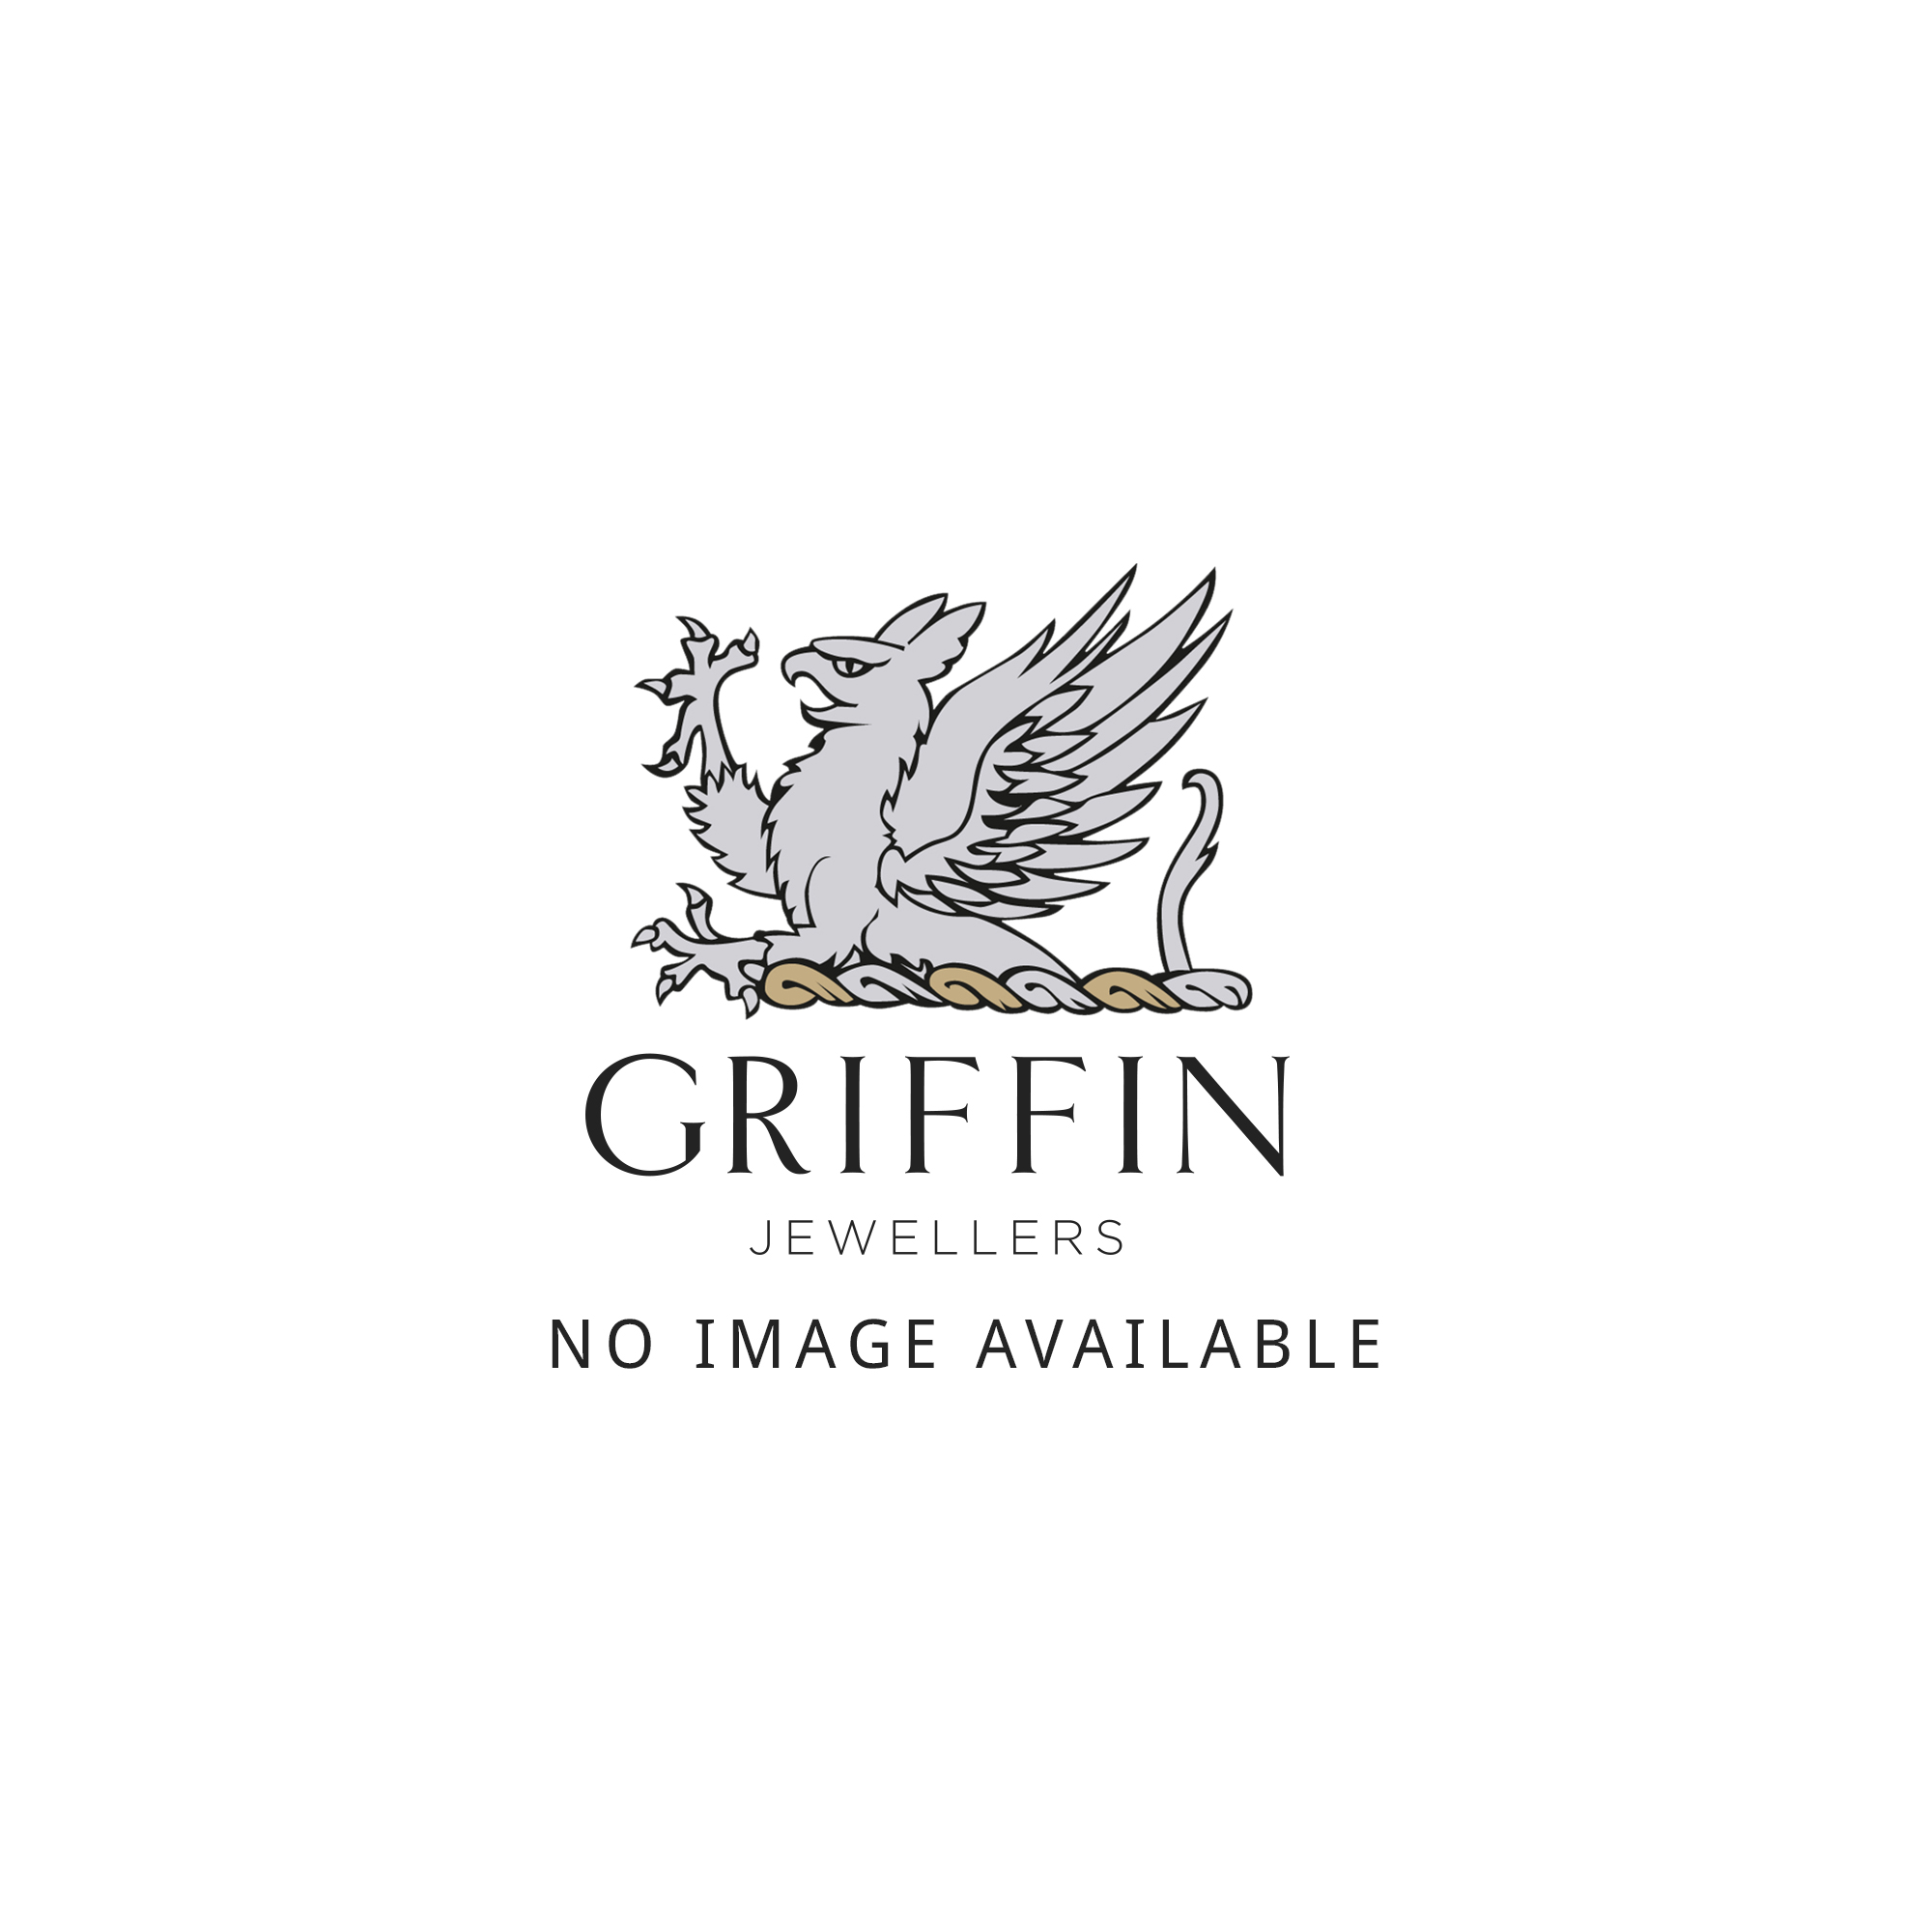 Griffin Jewellers Rings